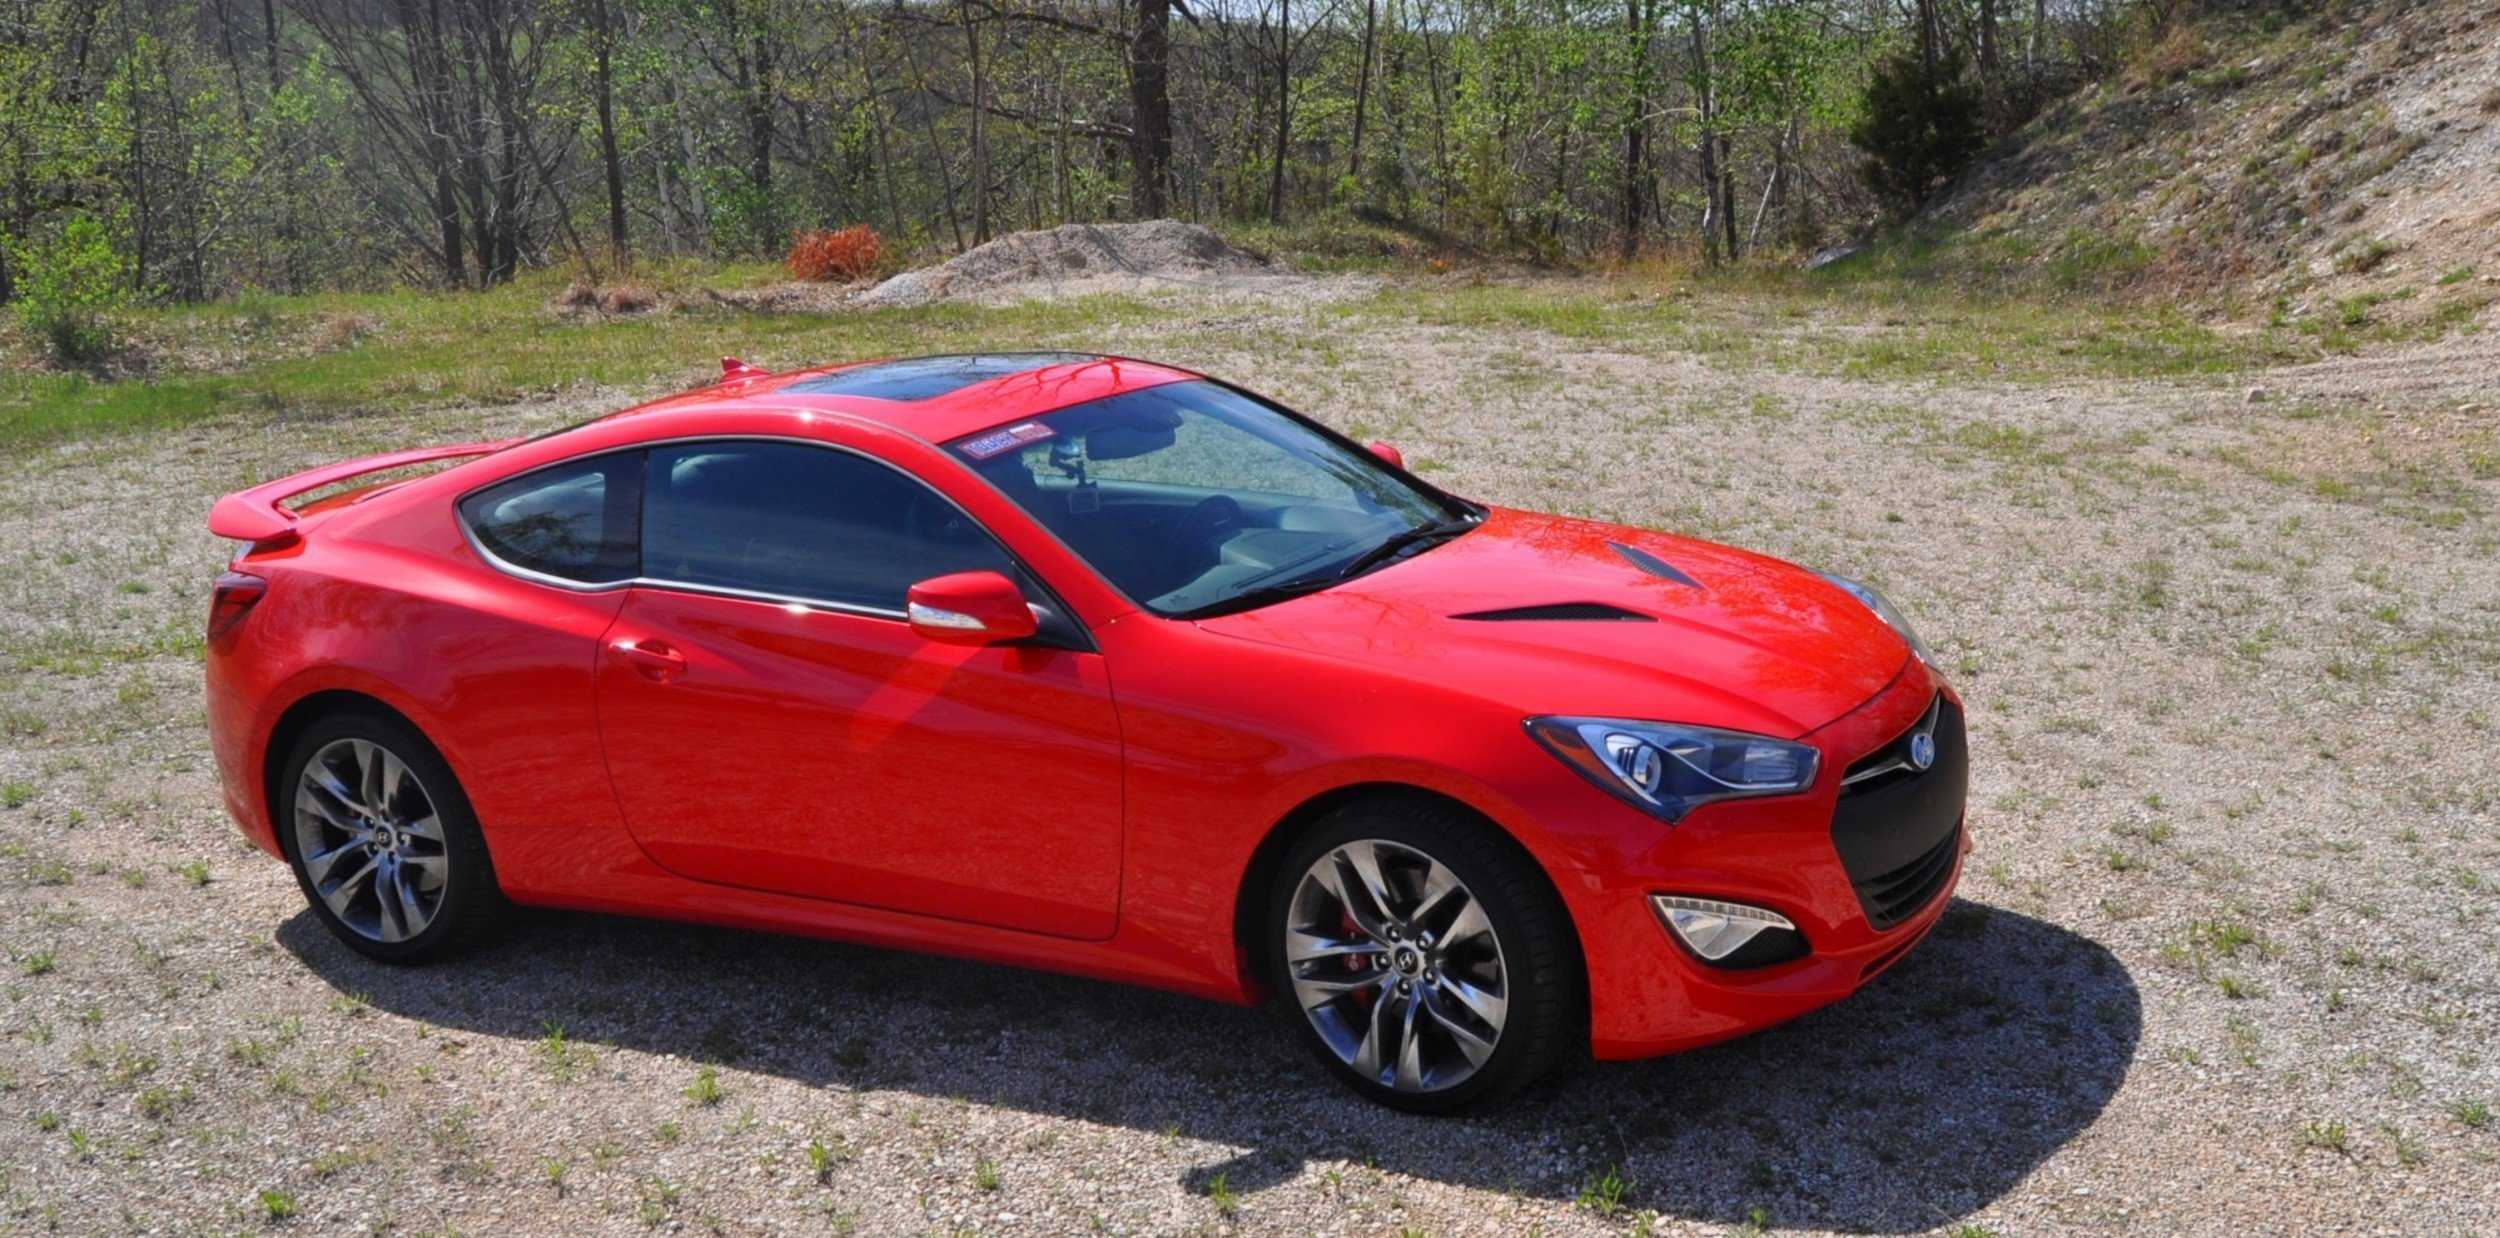 s genesis radka news blog makes specs photos car hyundai